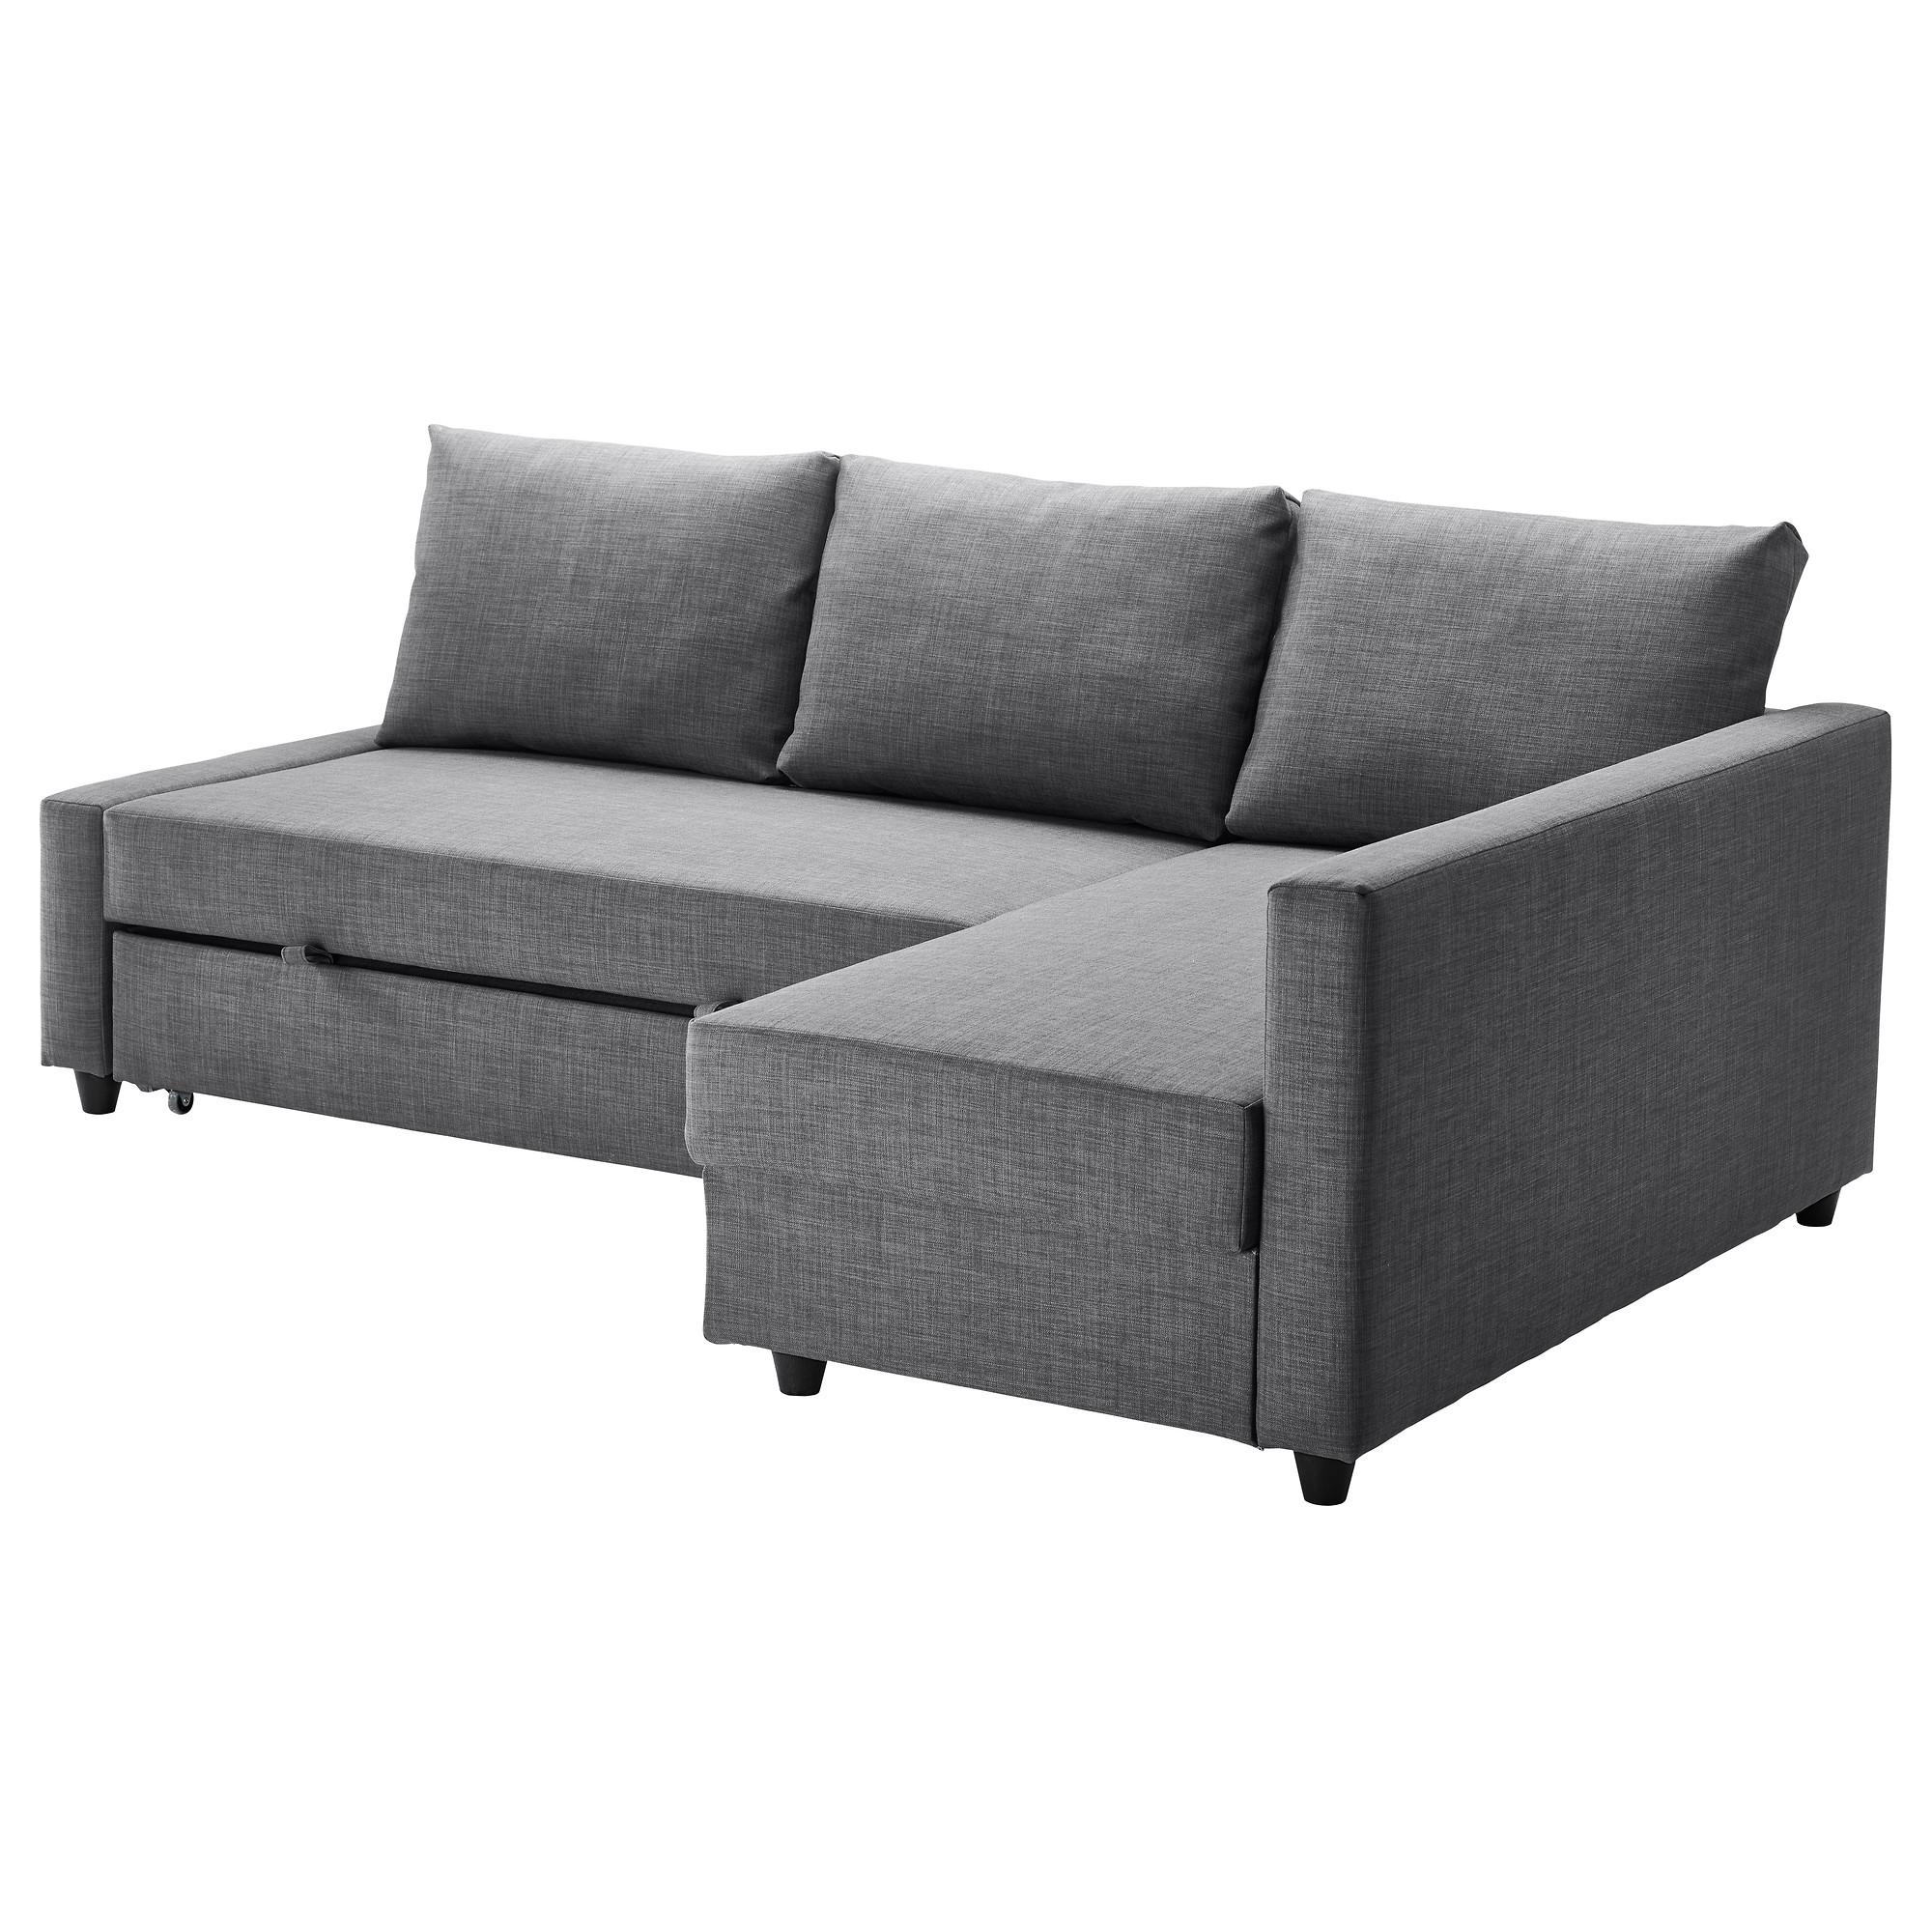 Sofa Beds & Futons – Ikea Intended For King Size Sofa Beds (Image 13 of 20)